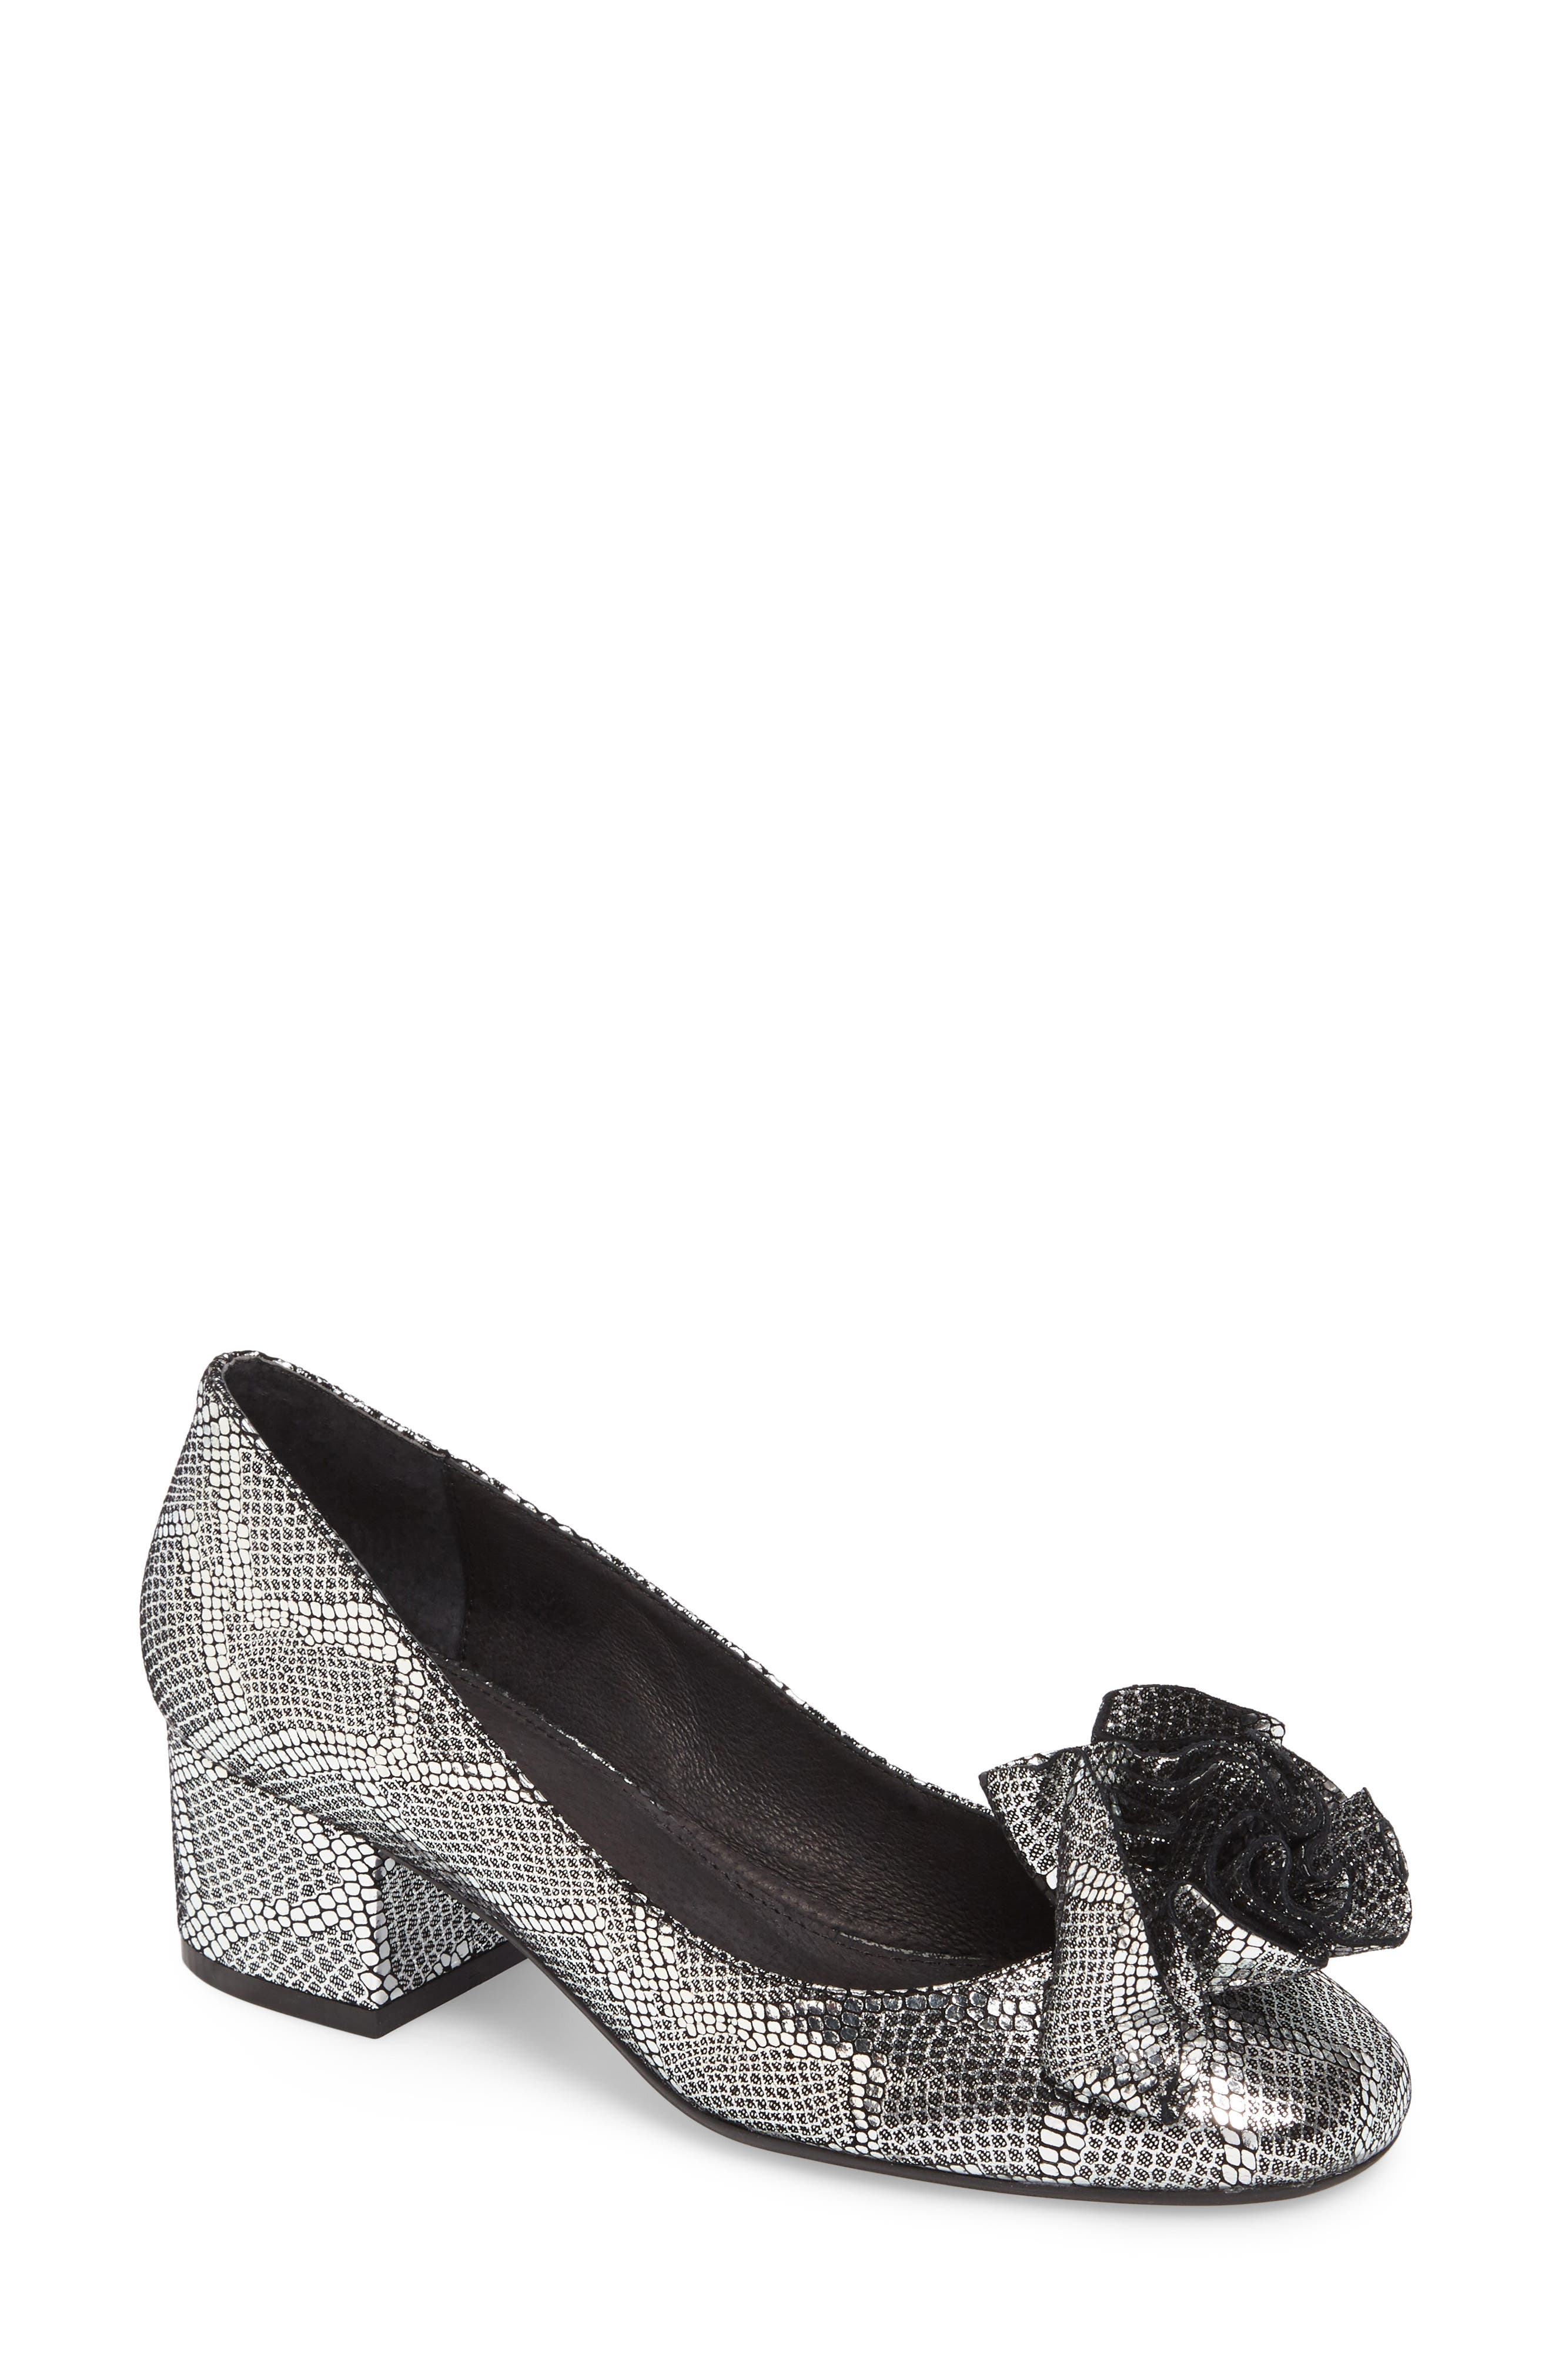 Alternate Image 1 Selected - Cecelia New York Lilly Pump (Women)